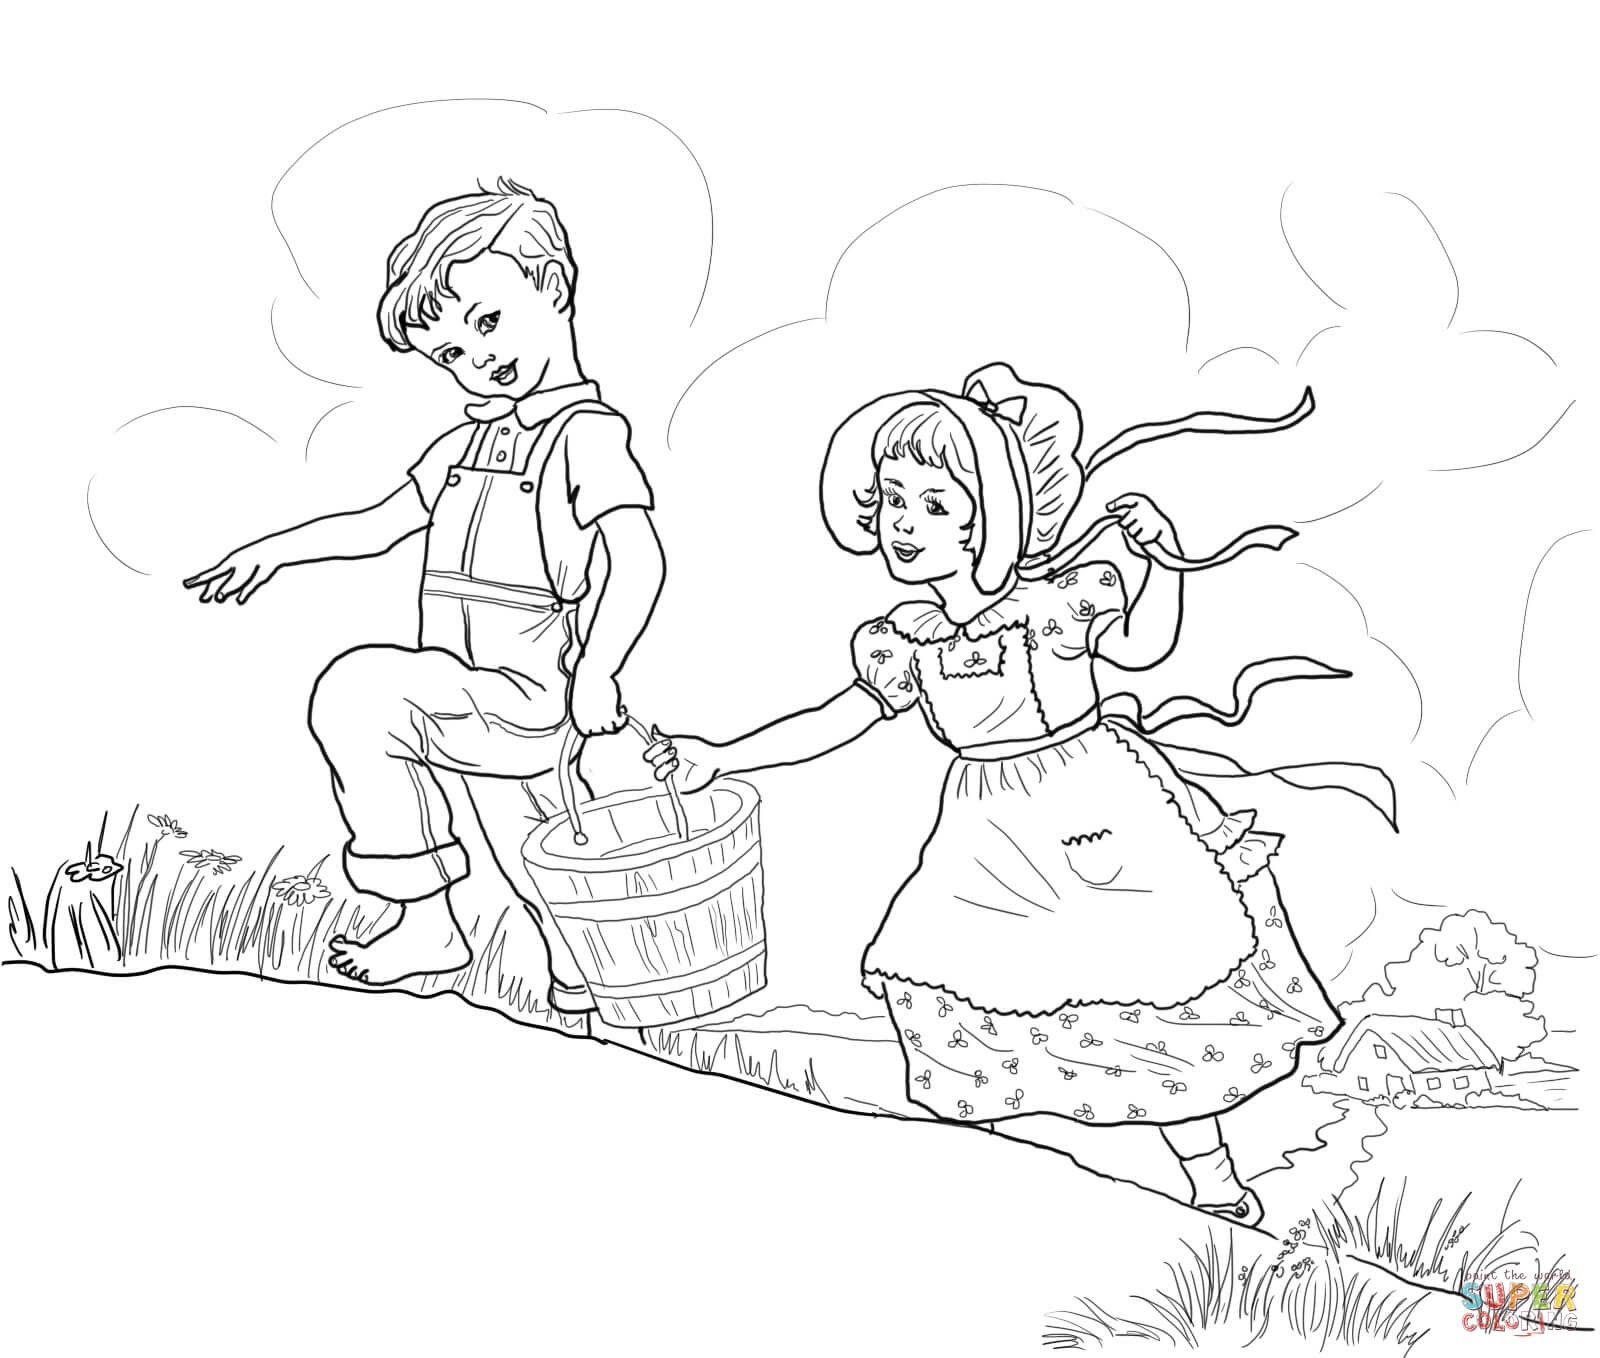 Jack And Jill Nursery Rhyme Coloring Page | Free Printable Coloring - Free Printable Nursery Rhyme Coloring Pages